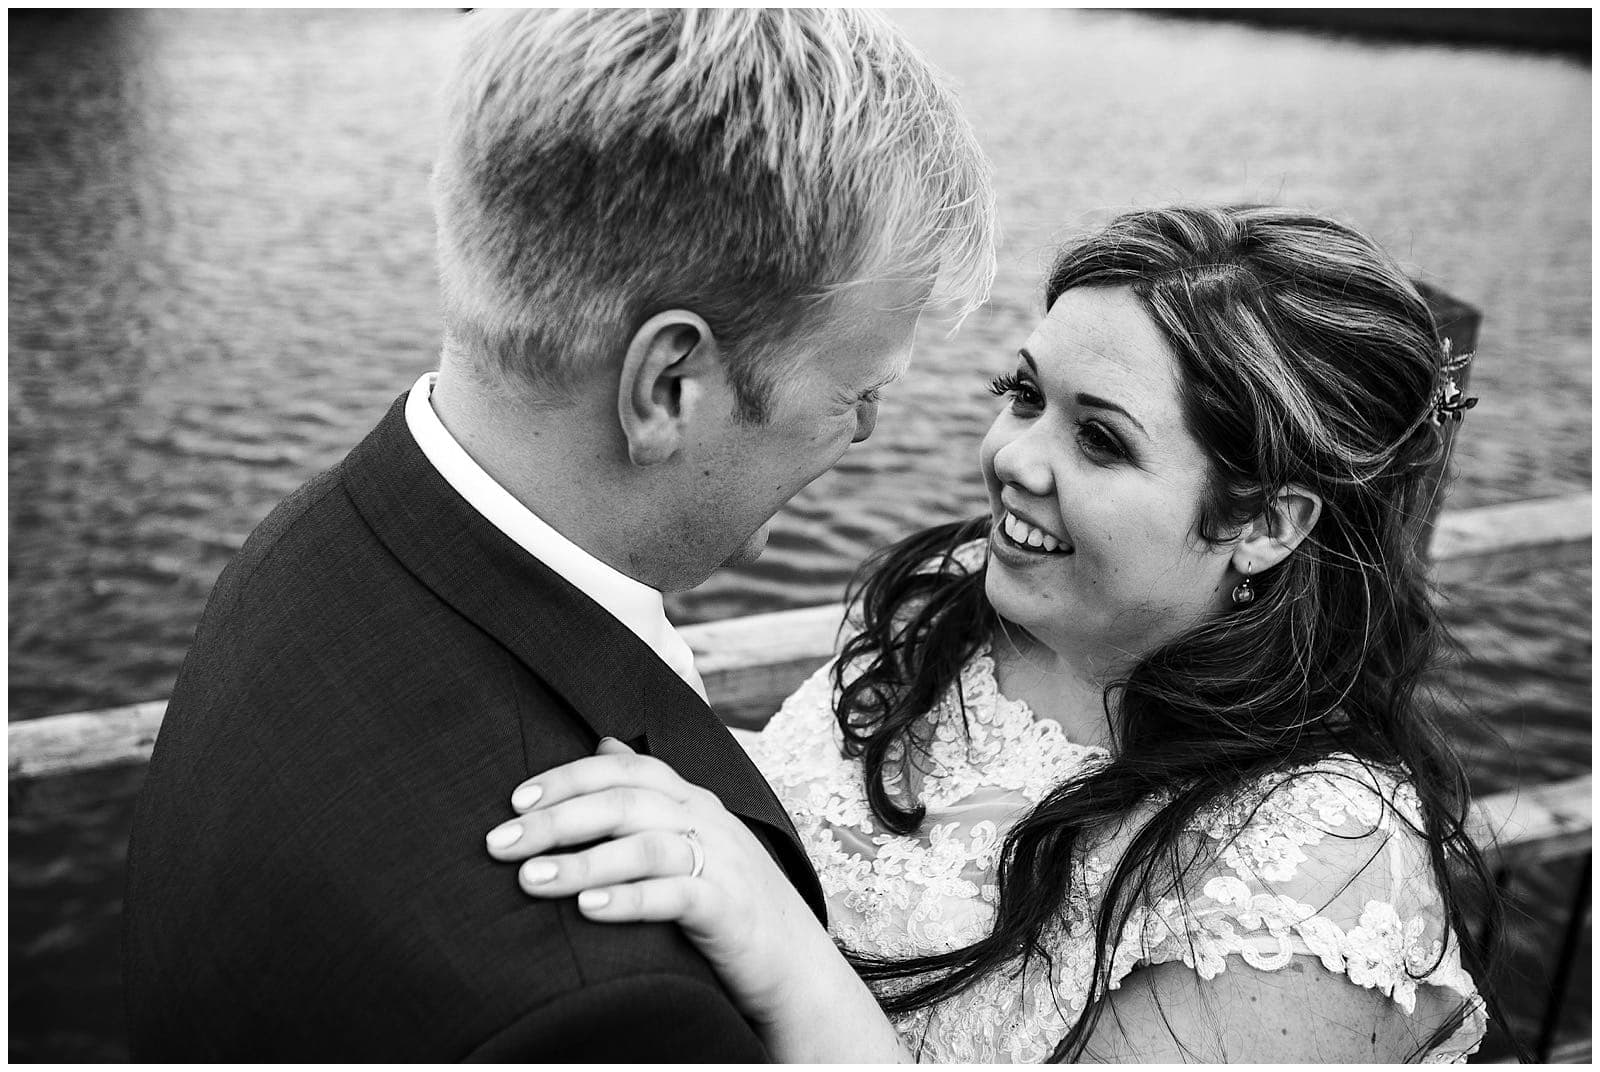 Emily & Sean - Wedding Planning Advice - 5 Questions Answered by A Bride